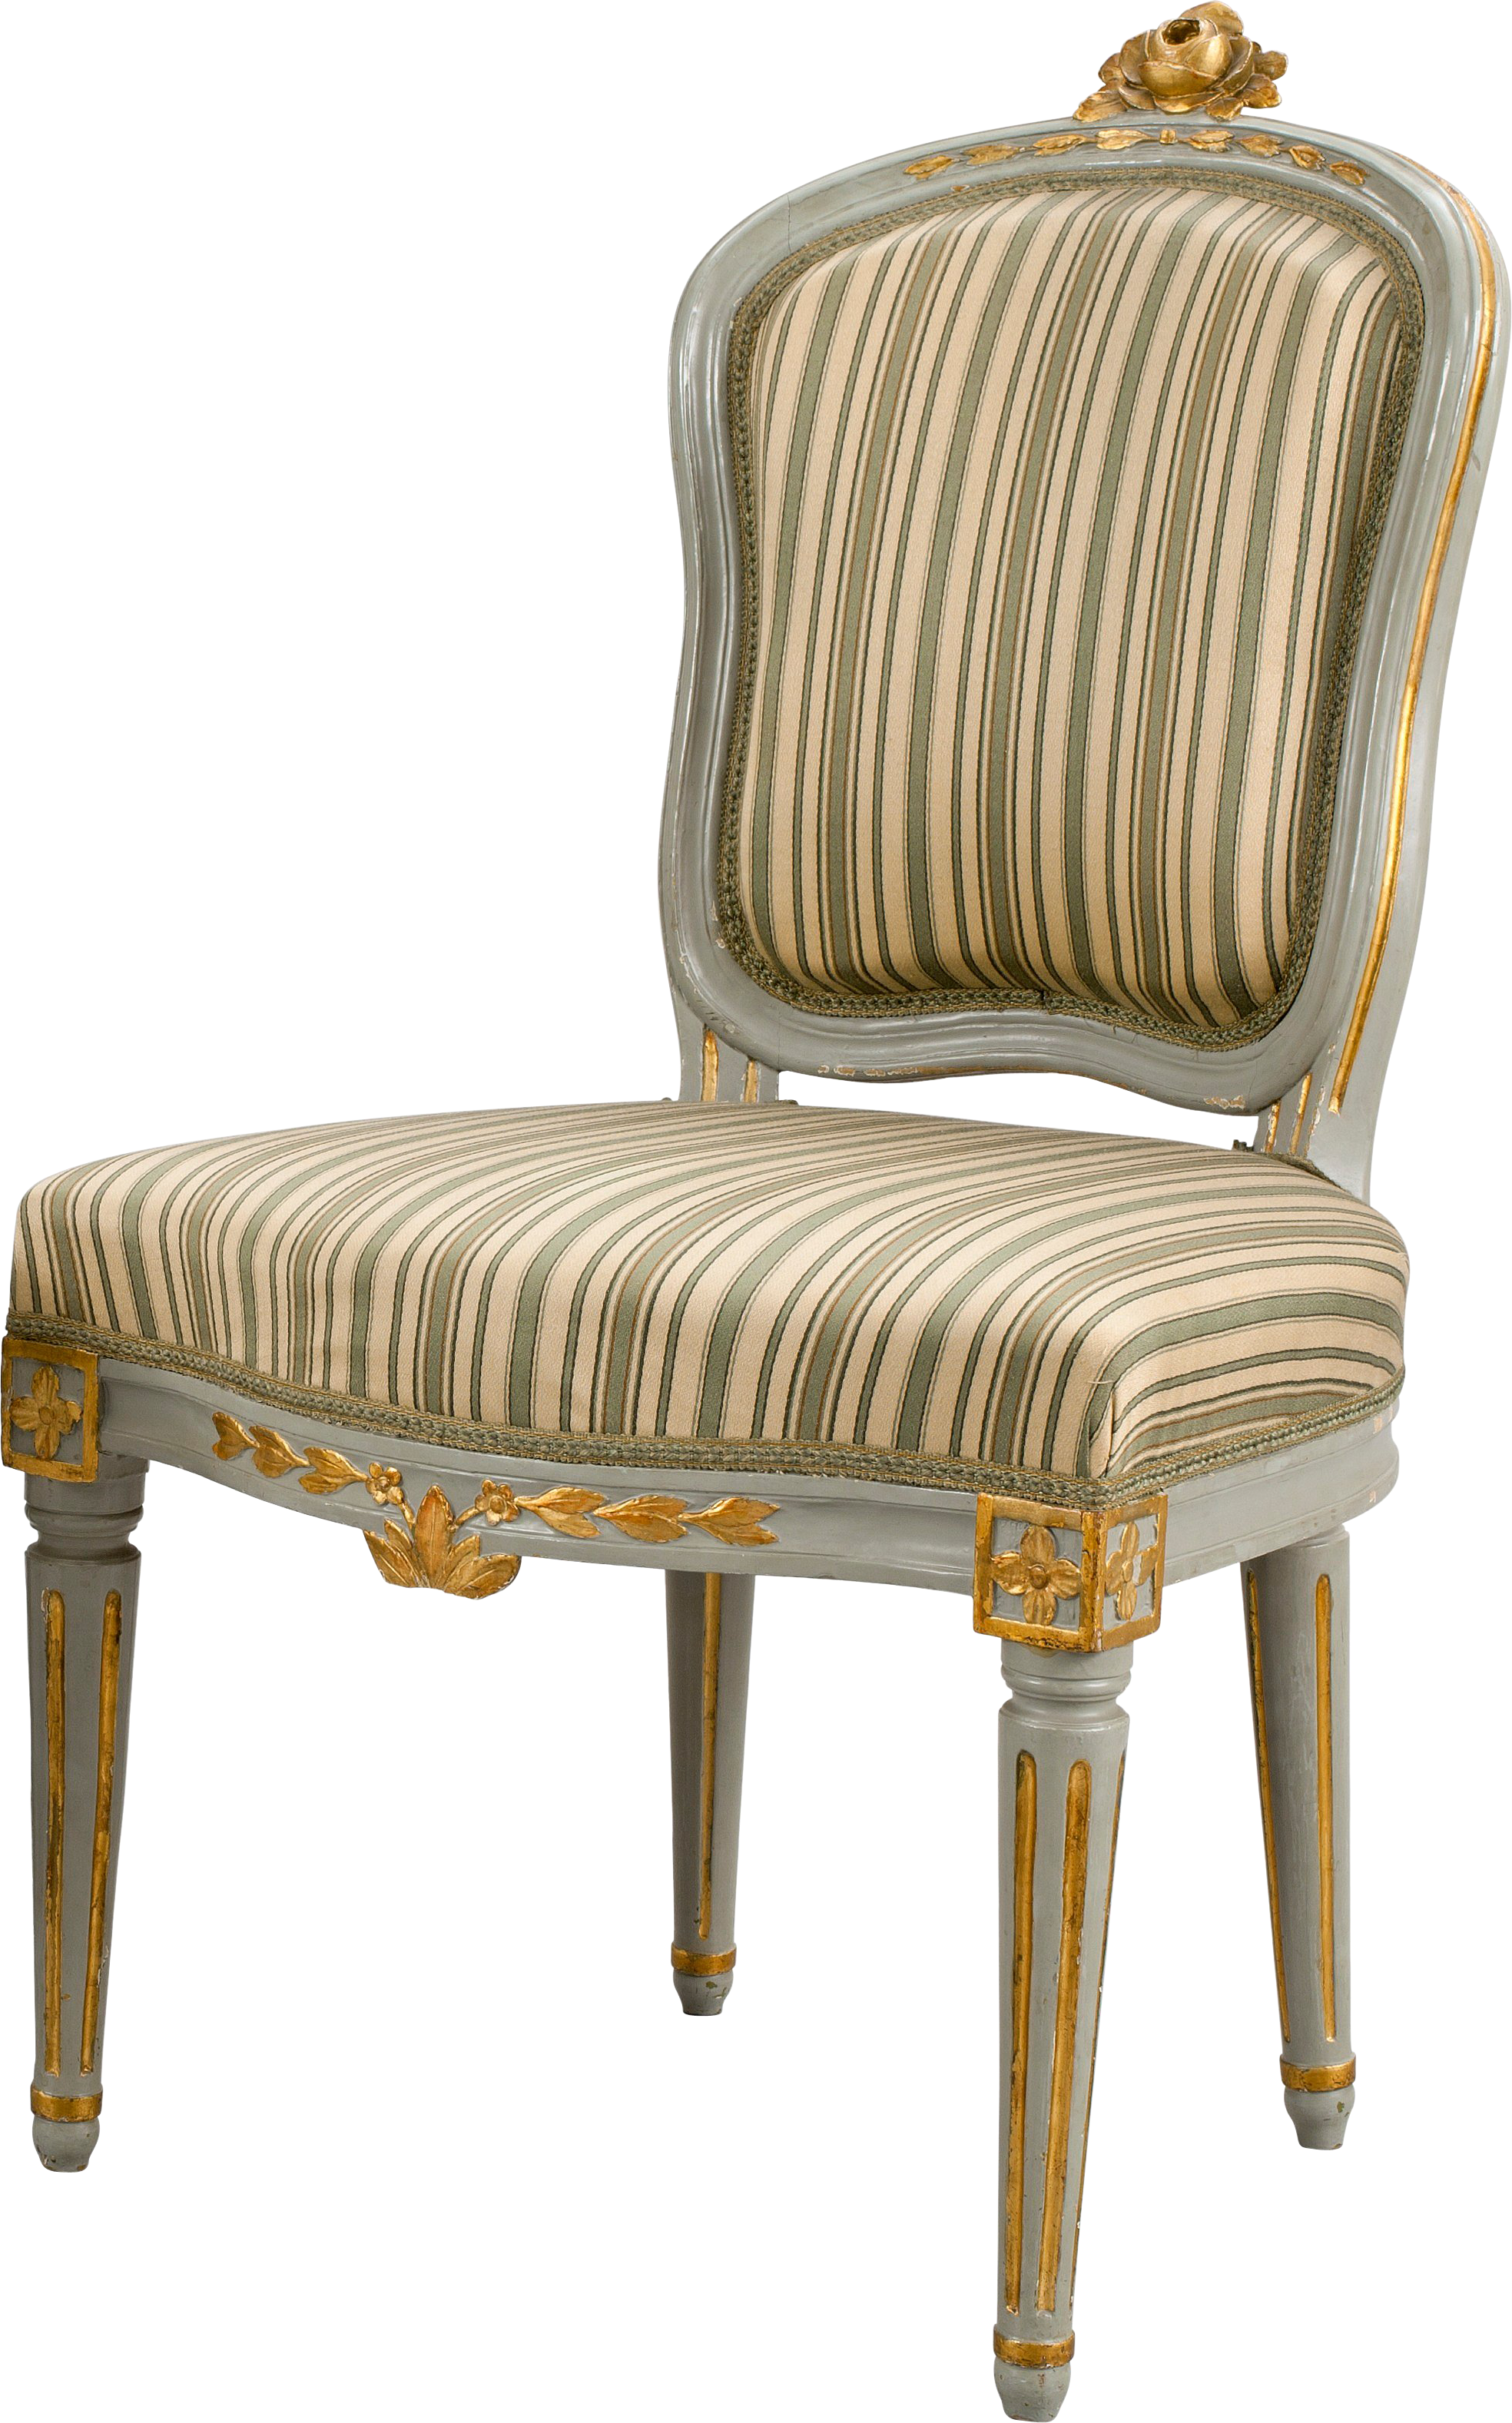 Chair png transparent images. Furniture clipart farnichar